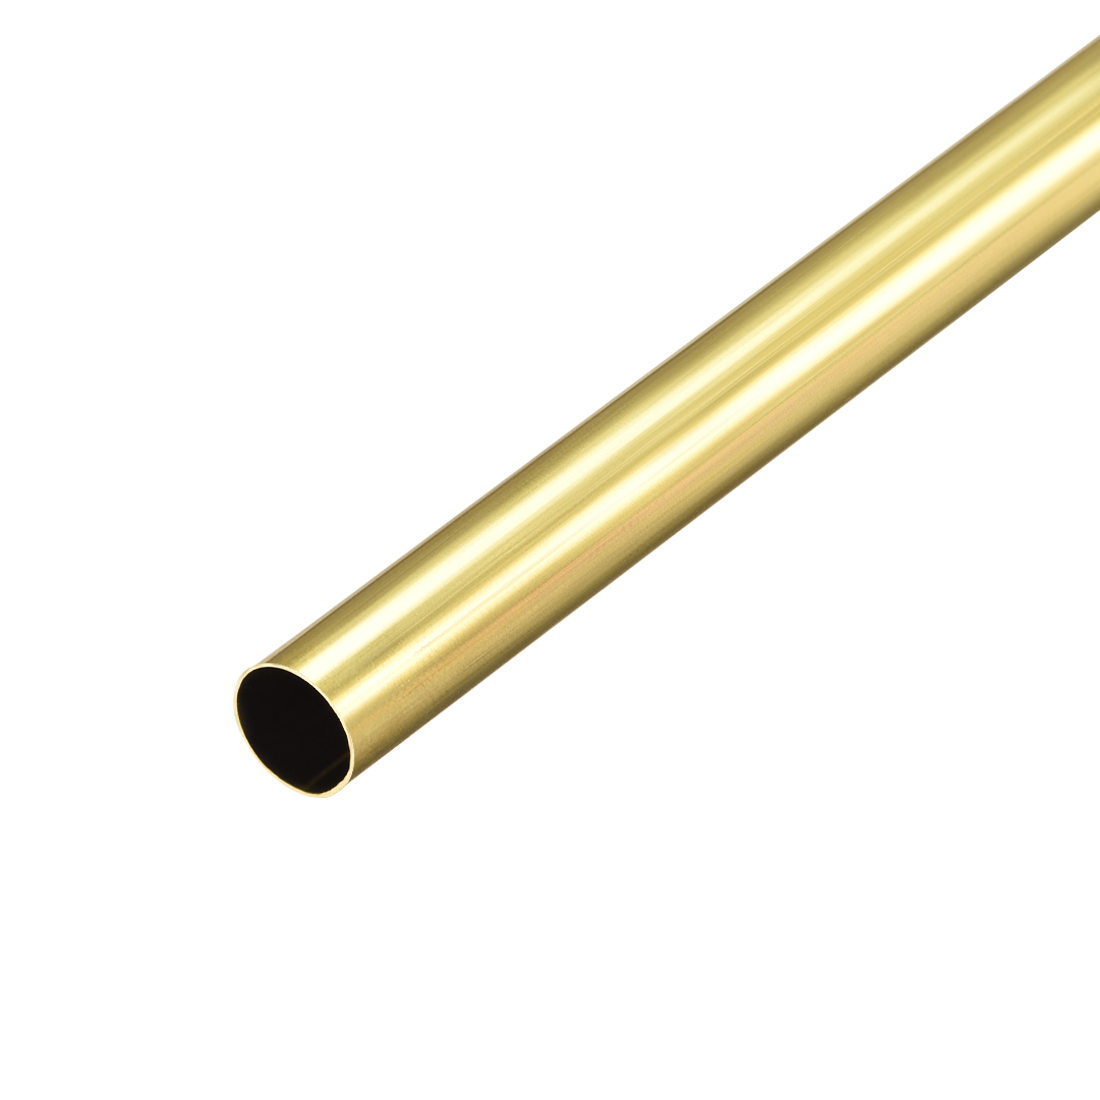 Uxcell Brass Round Tube 300mm Length 8mm OD 0.2mm Wall Thickness Seamless Straight Pipe Tubing